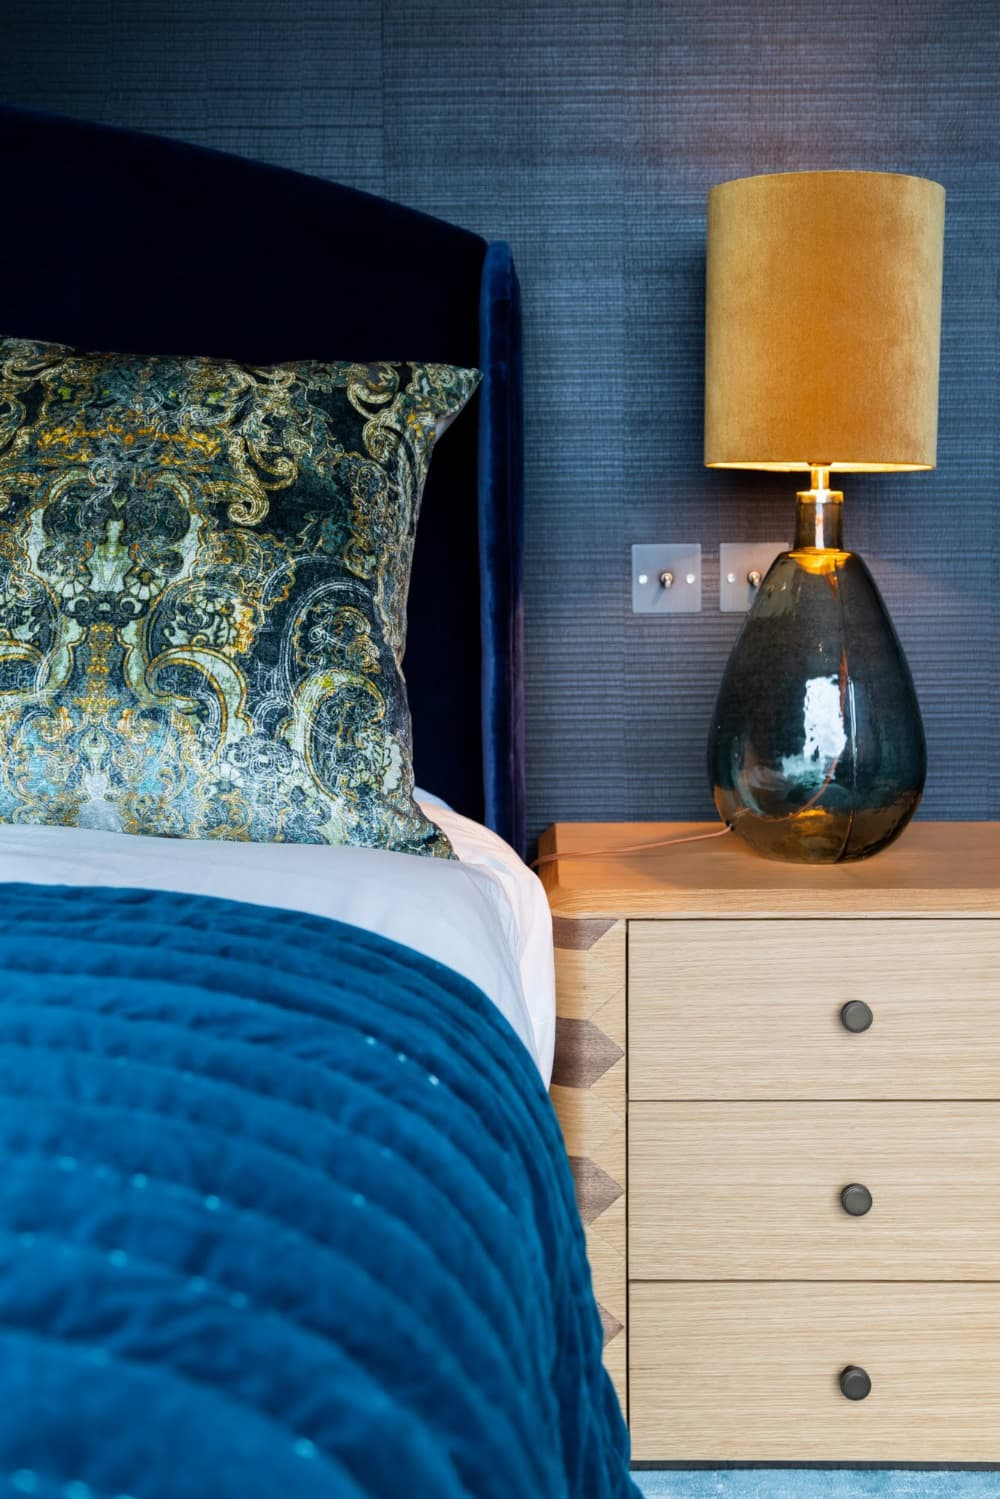 this is a dark bedroom with navy tiles and bed linen